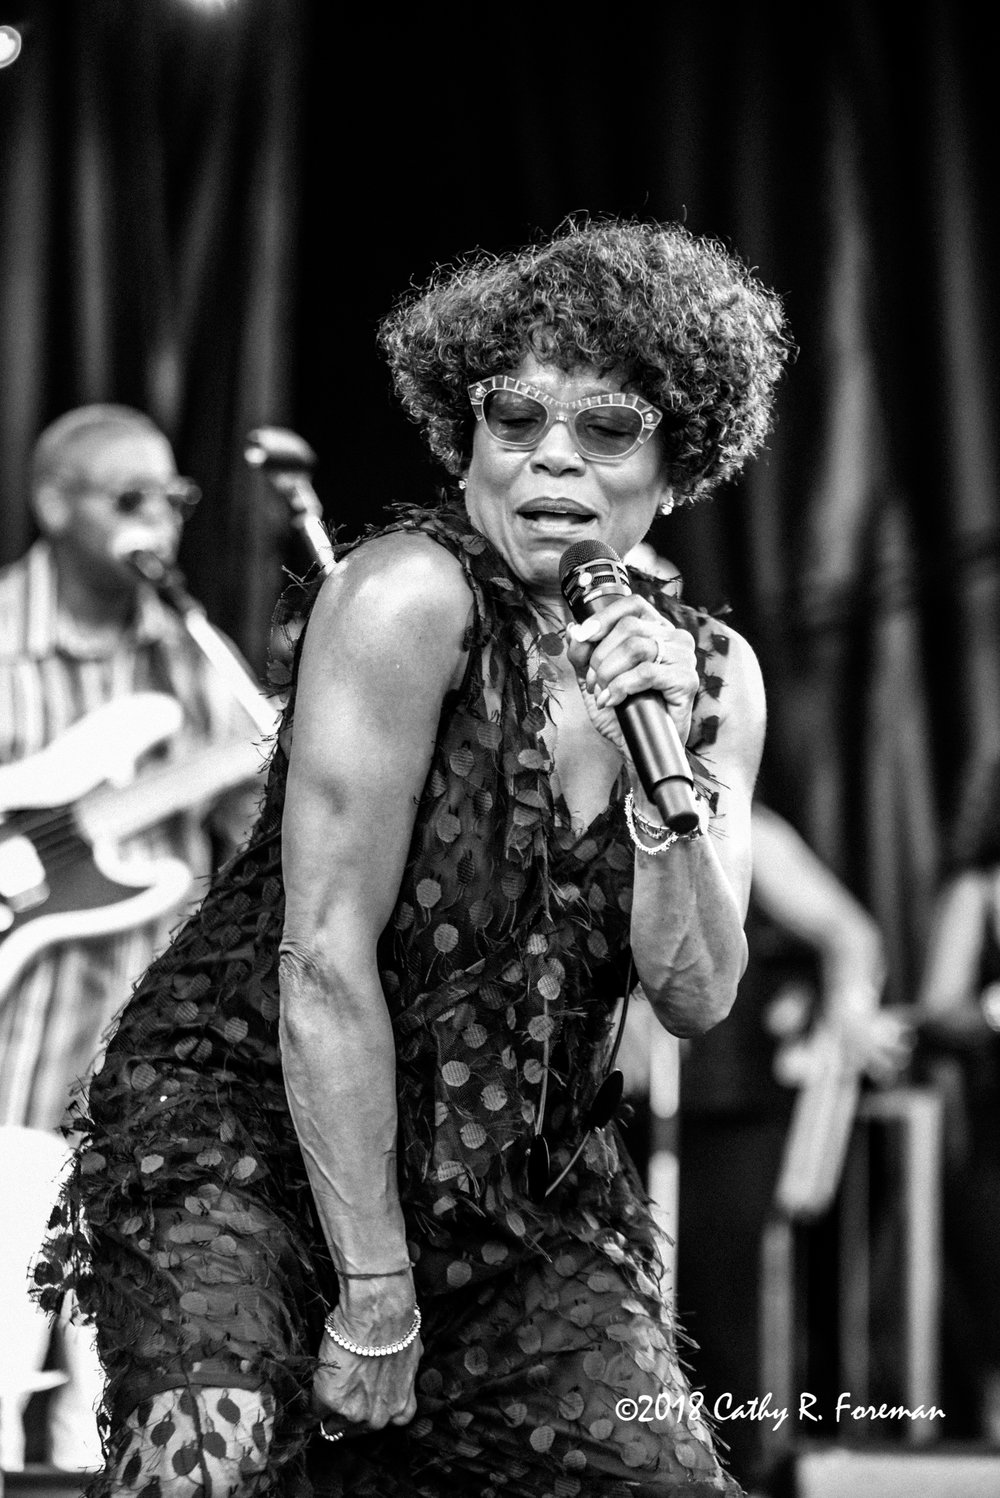 Dee Dee Bridgewater performs at the 2018 Richmond Jazz Festival. Image by: Cathy R. Foreman